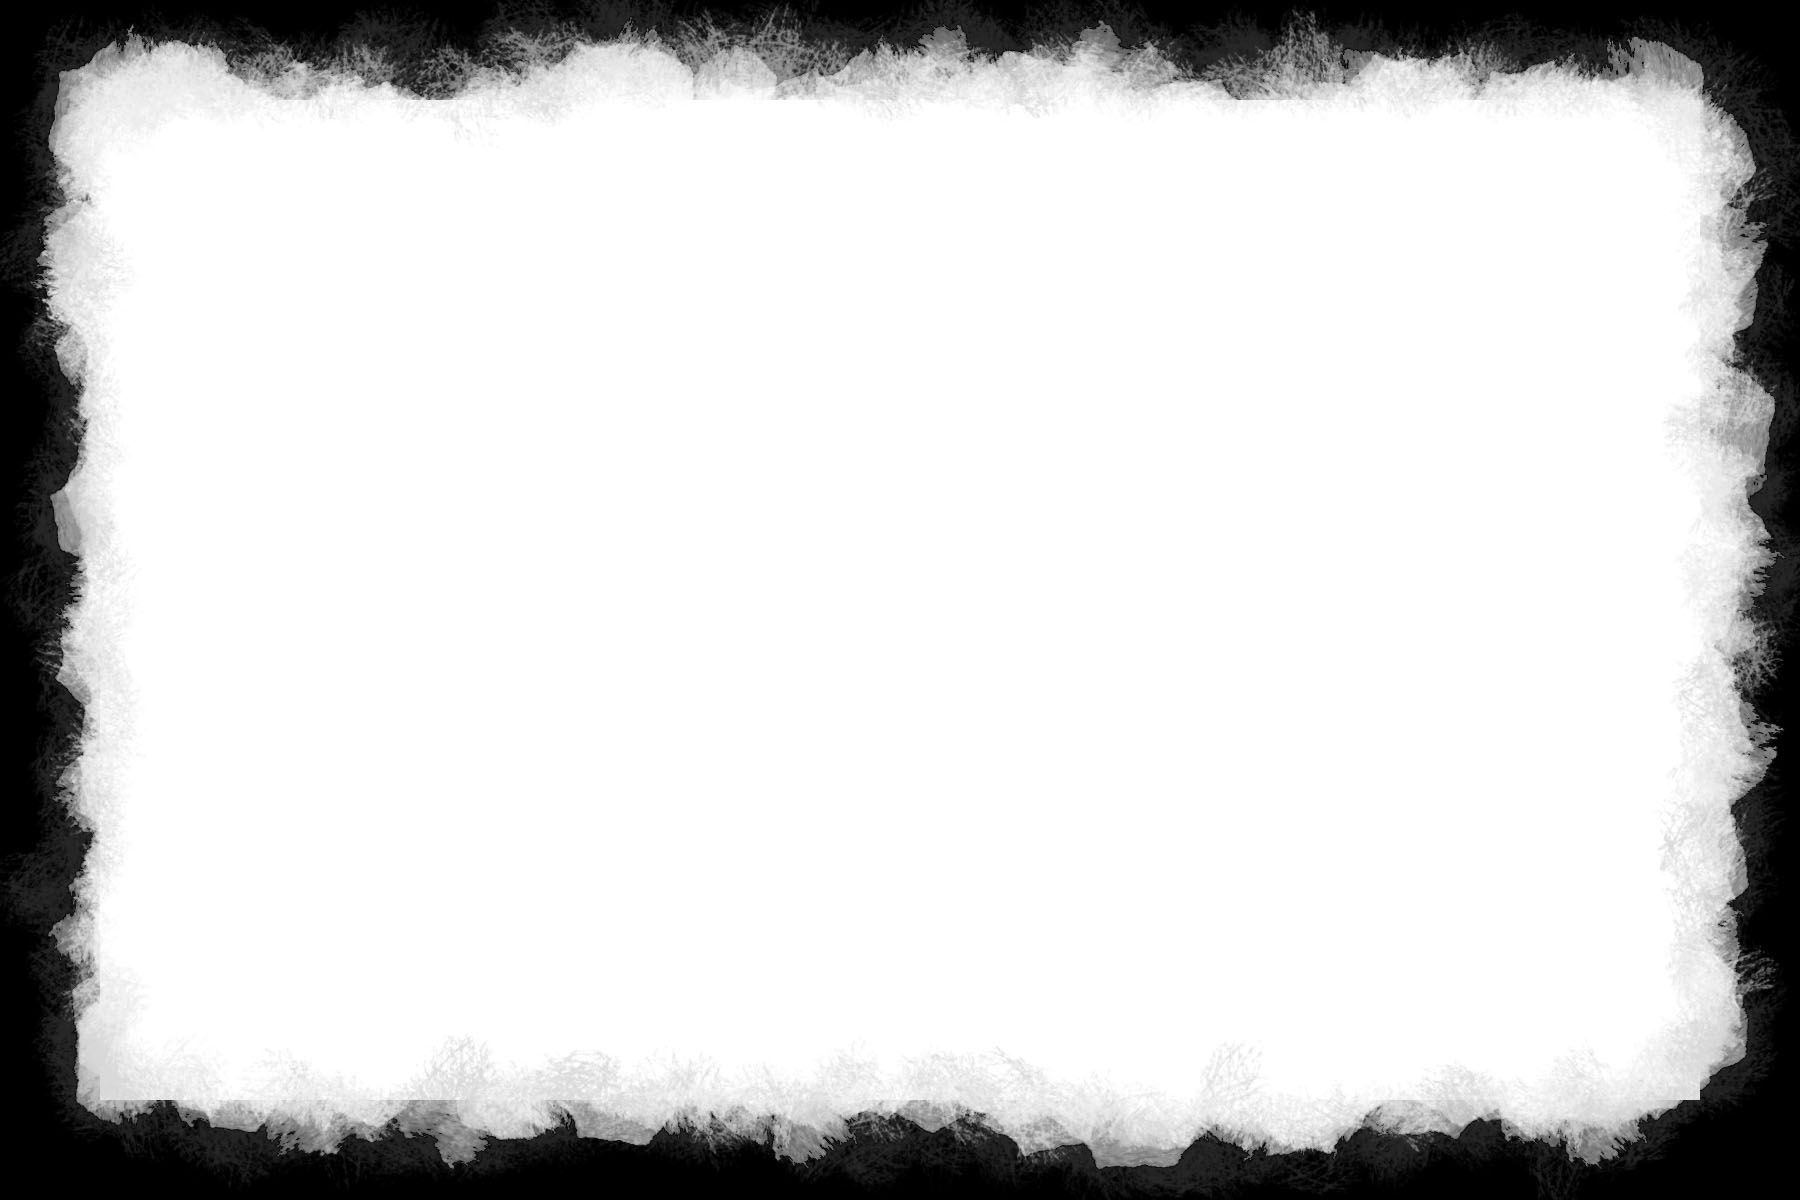 Photoshop Free Download Pictures Frames Free Download Photoshop Photoshop Blur Photo Background